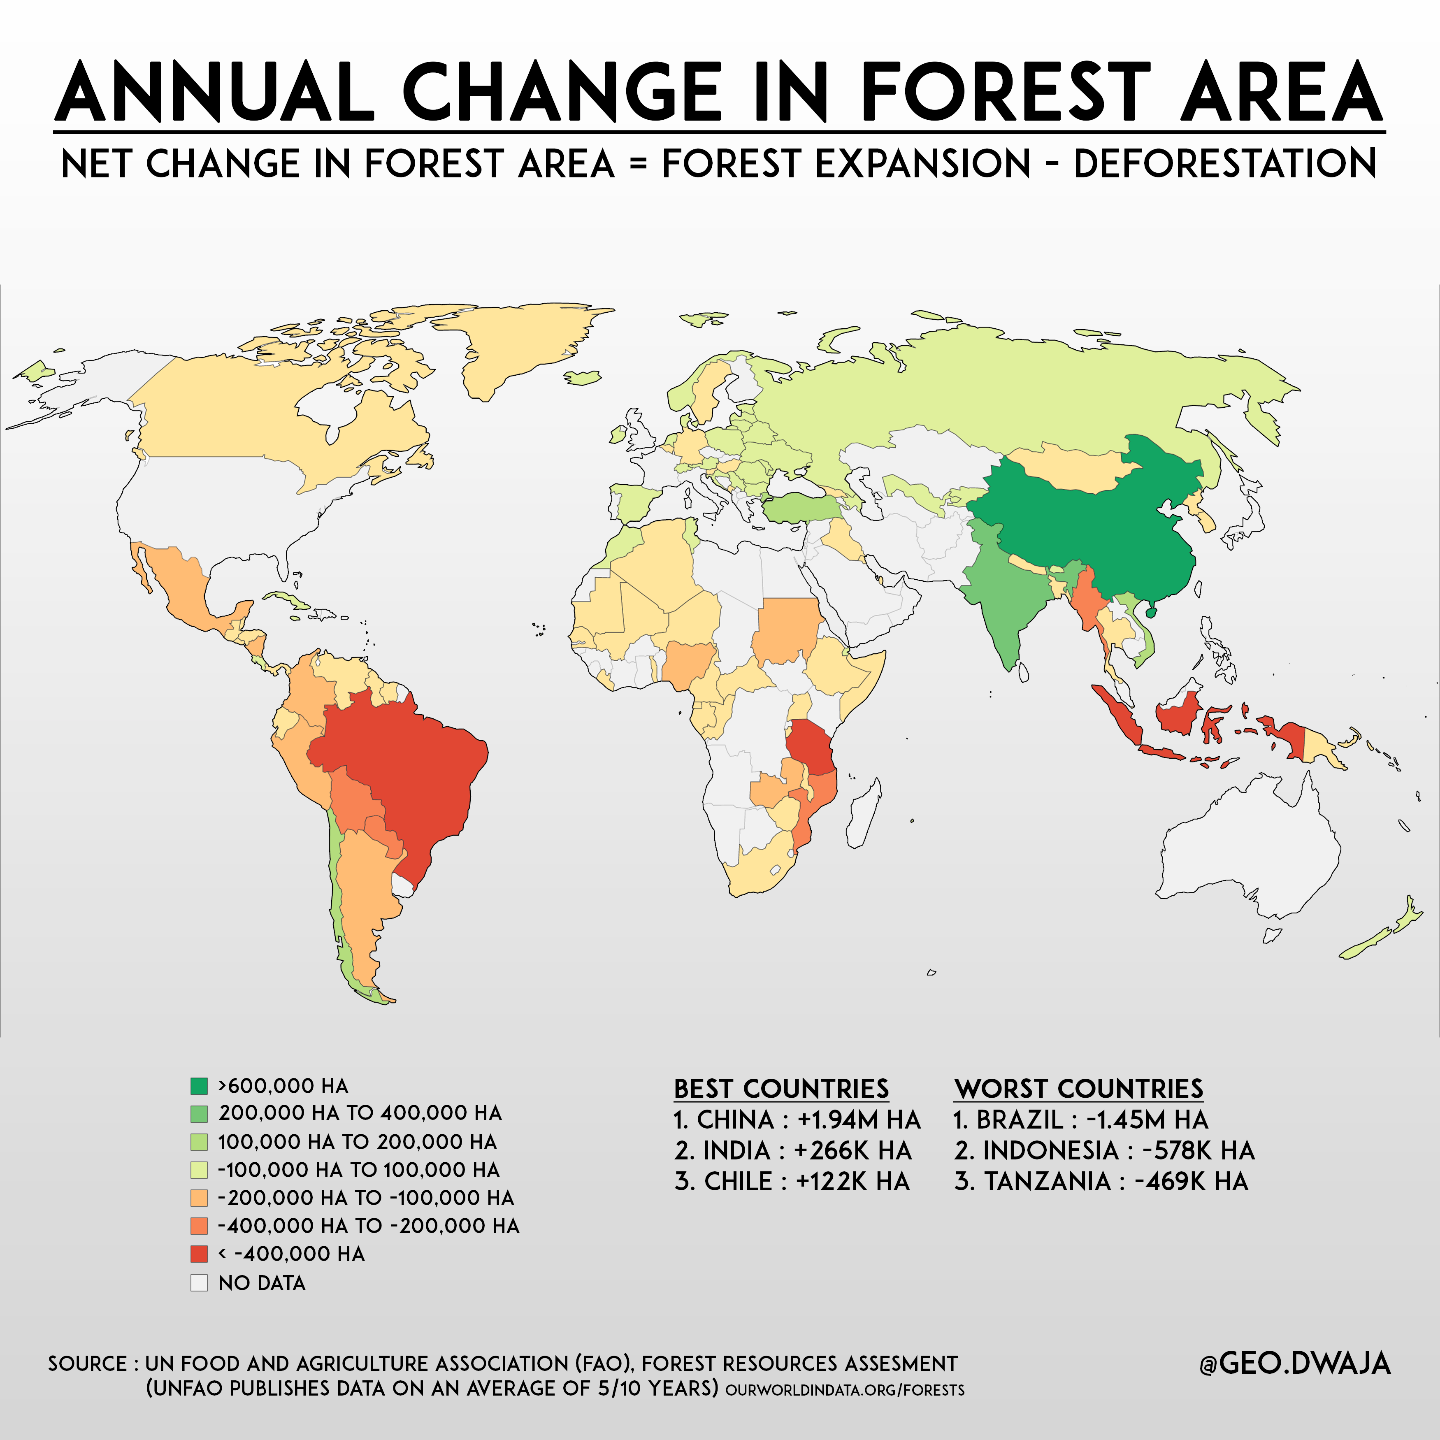 map of annual change in forest area, China having the biggest increase of 600k hectares and US not providing any data